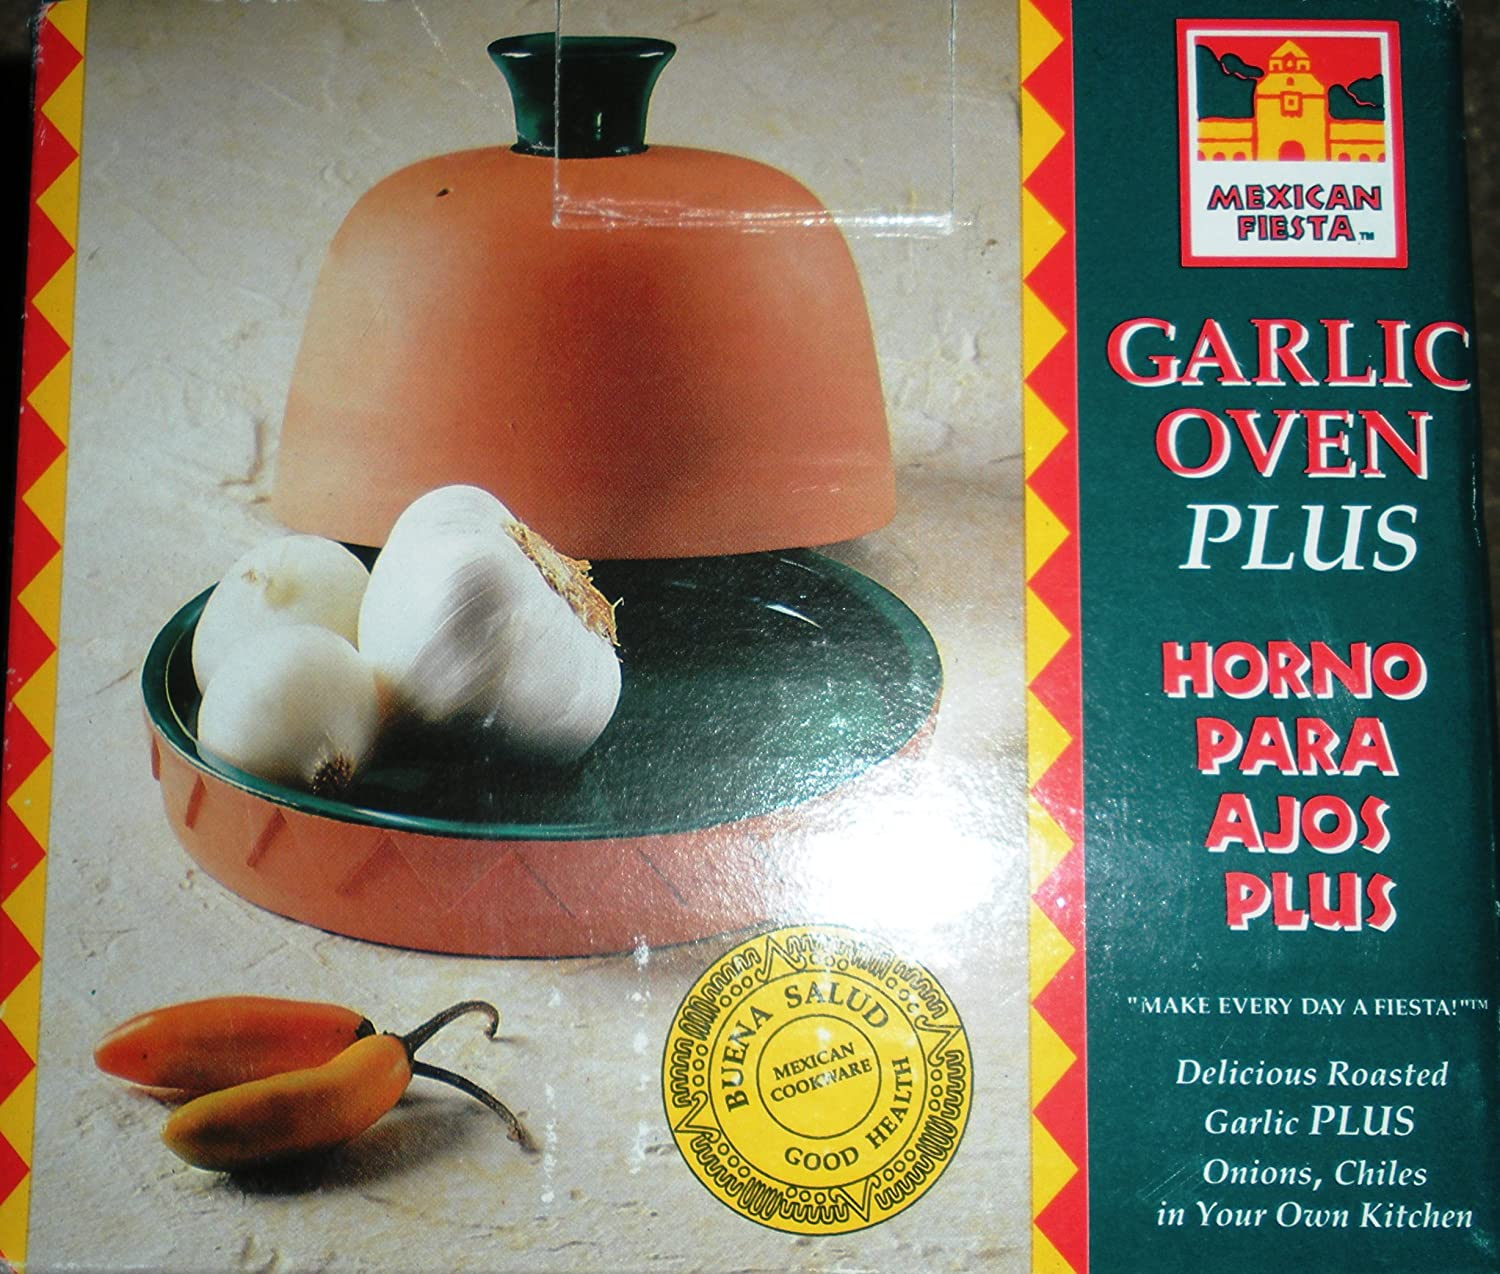 American Fiesta Garlic Oven Plus Keilen Ltd 130-53